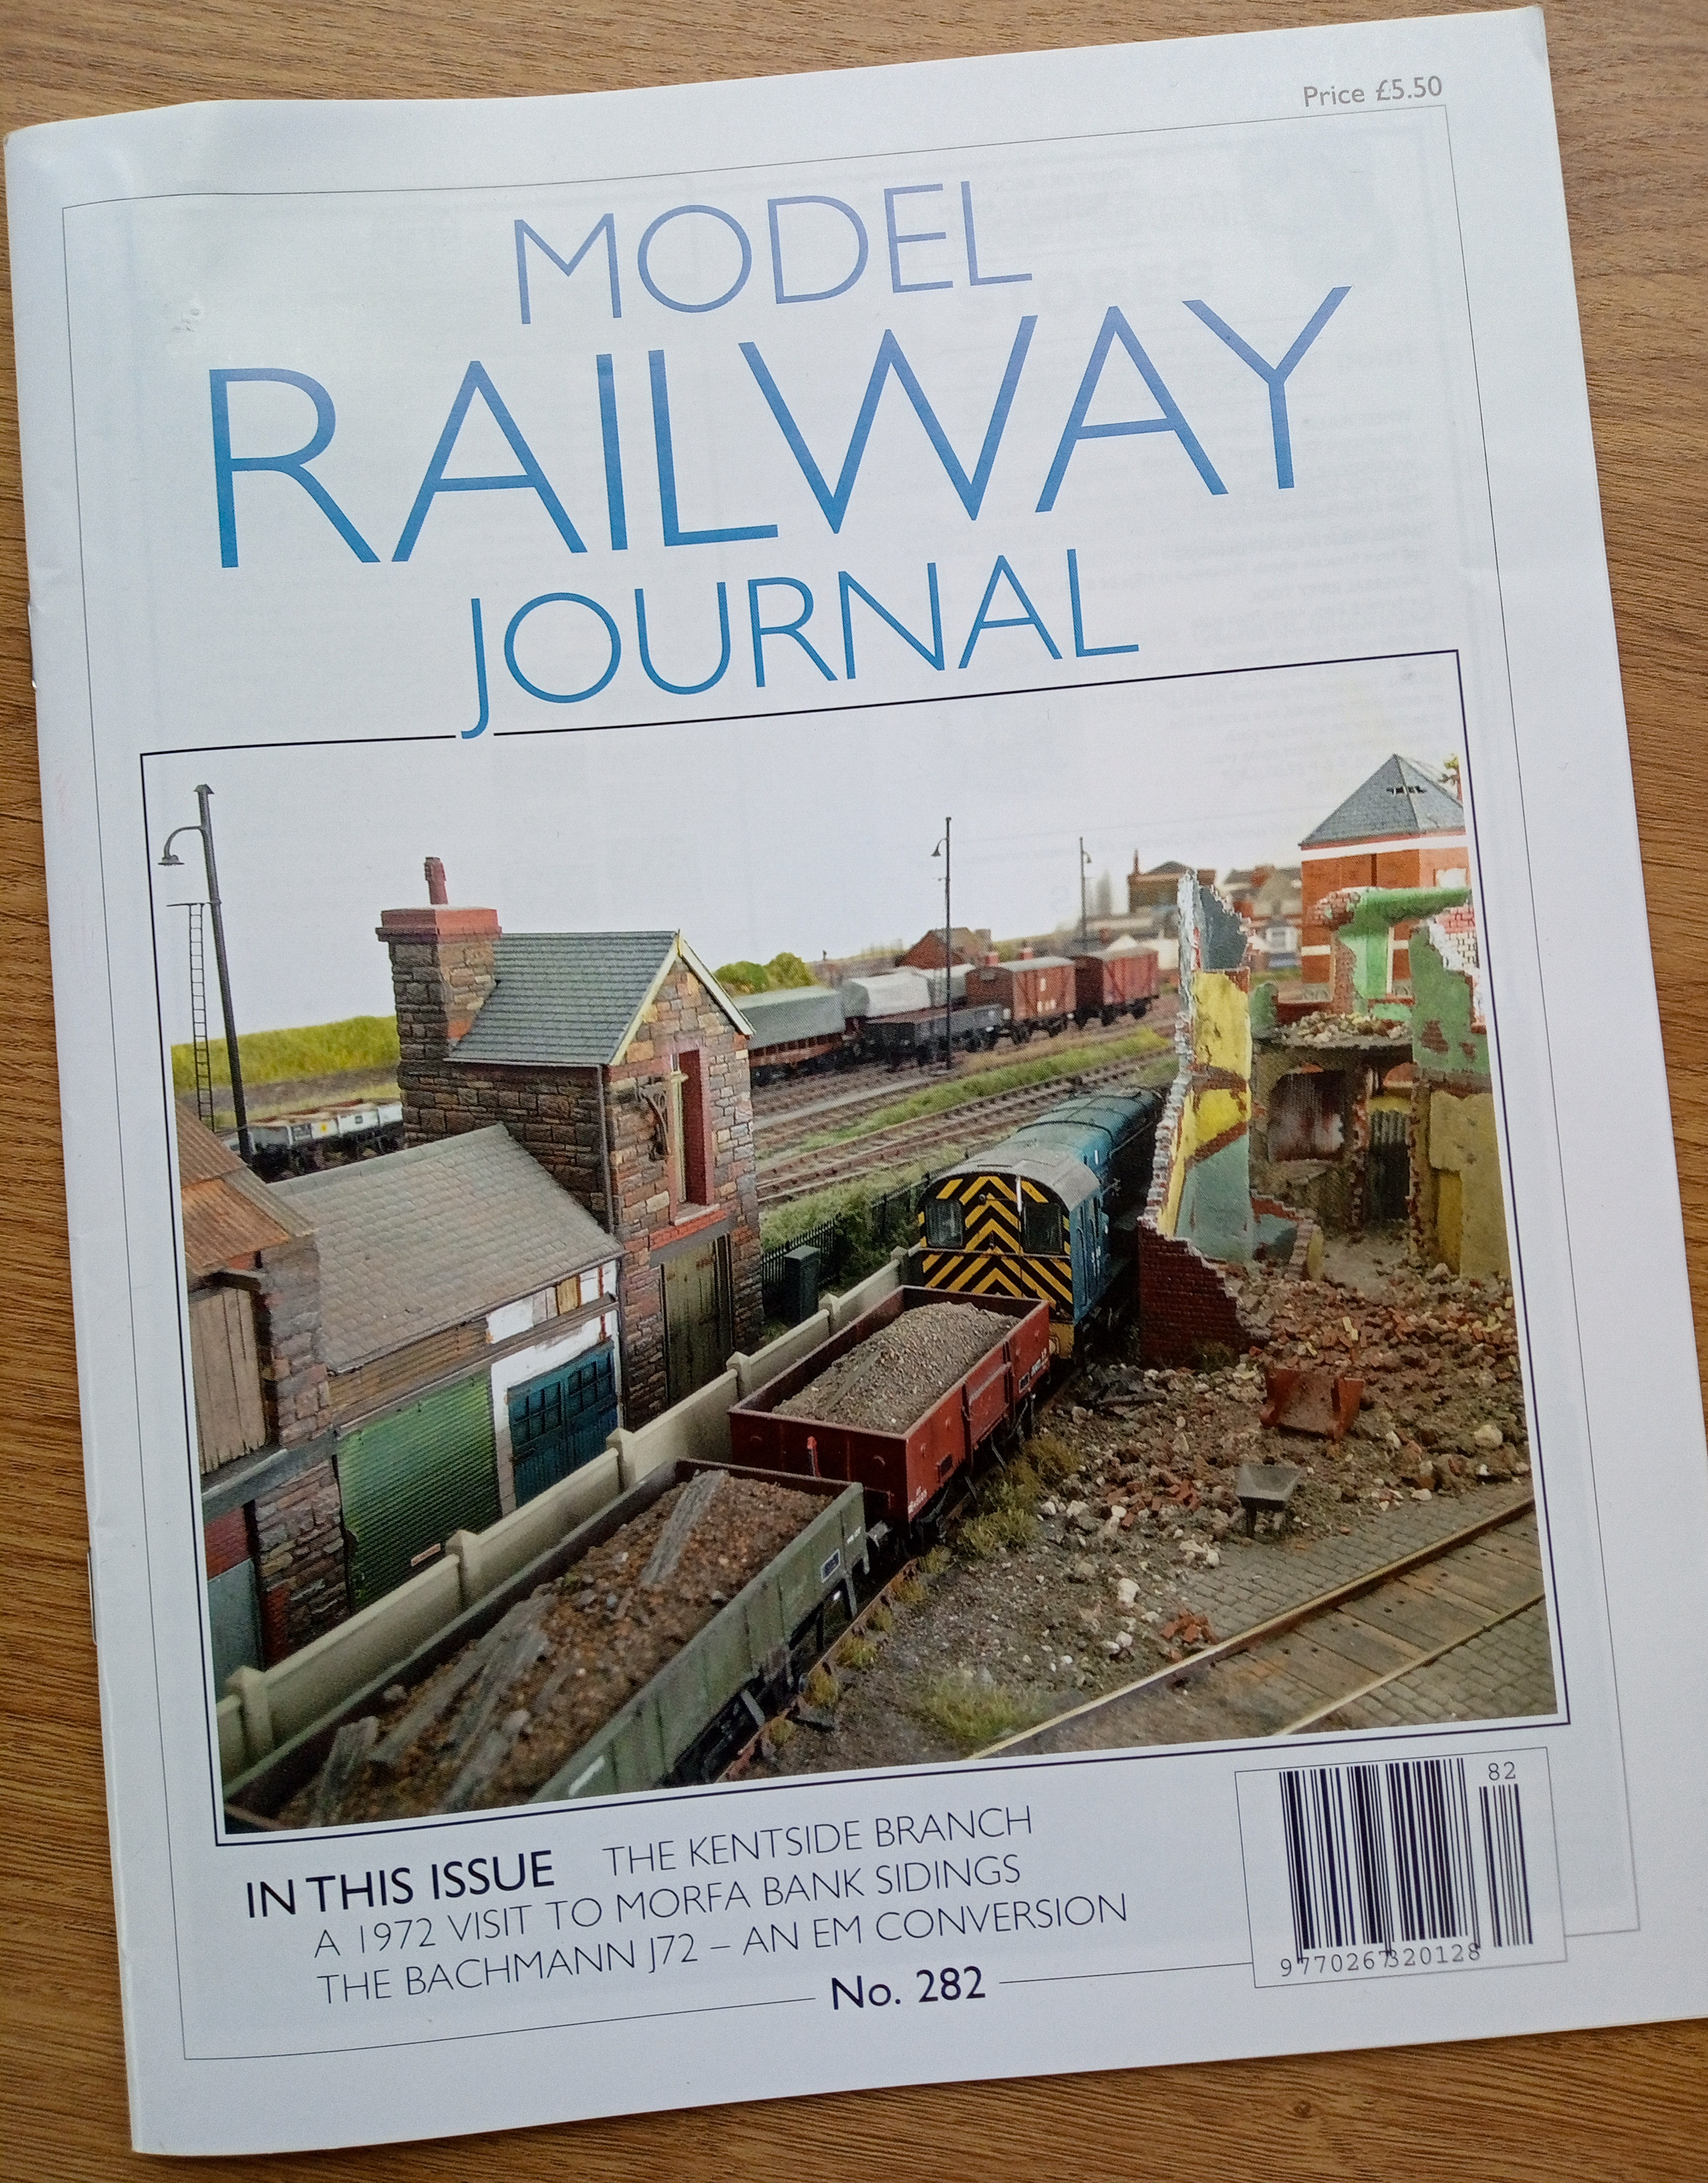 Why you should buy Model Railway Journal